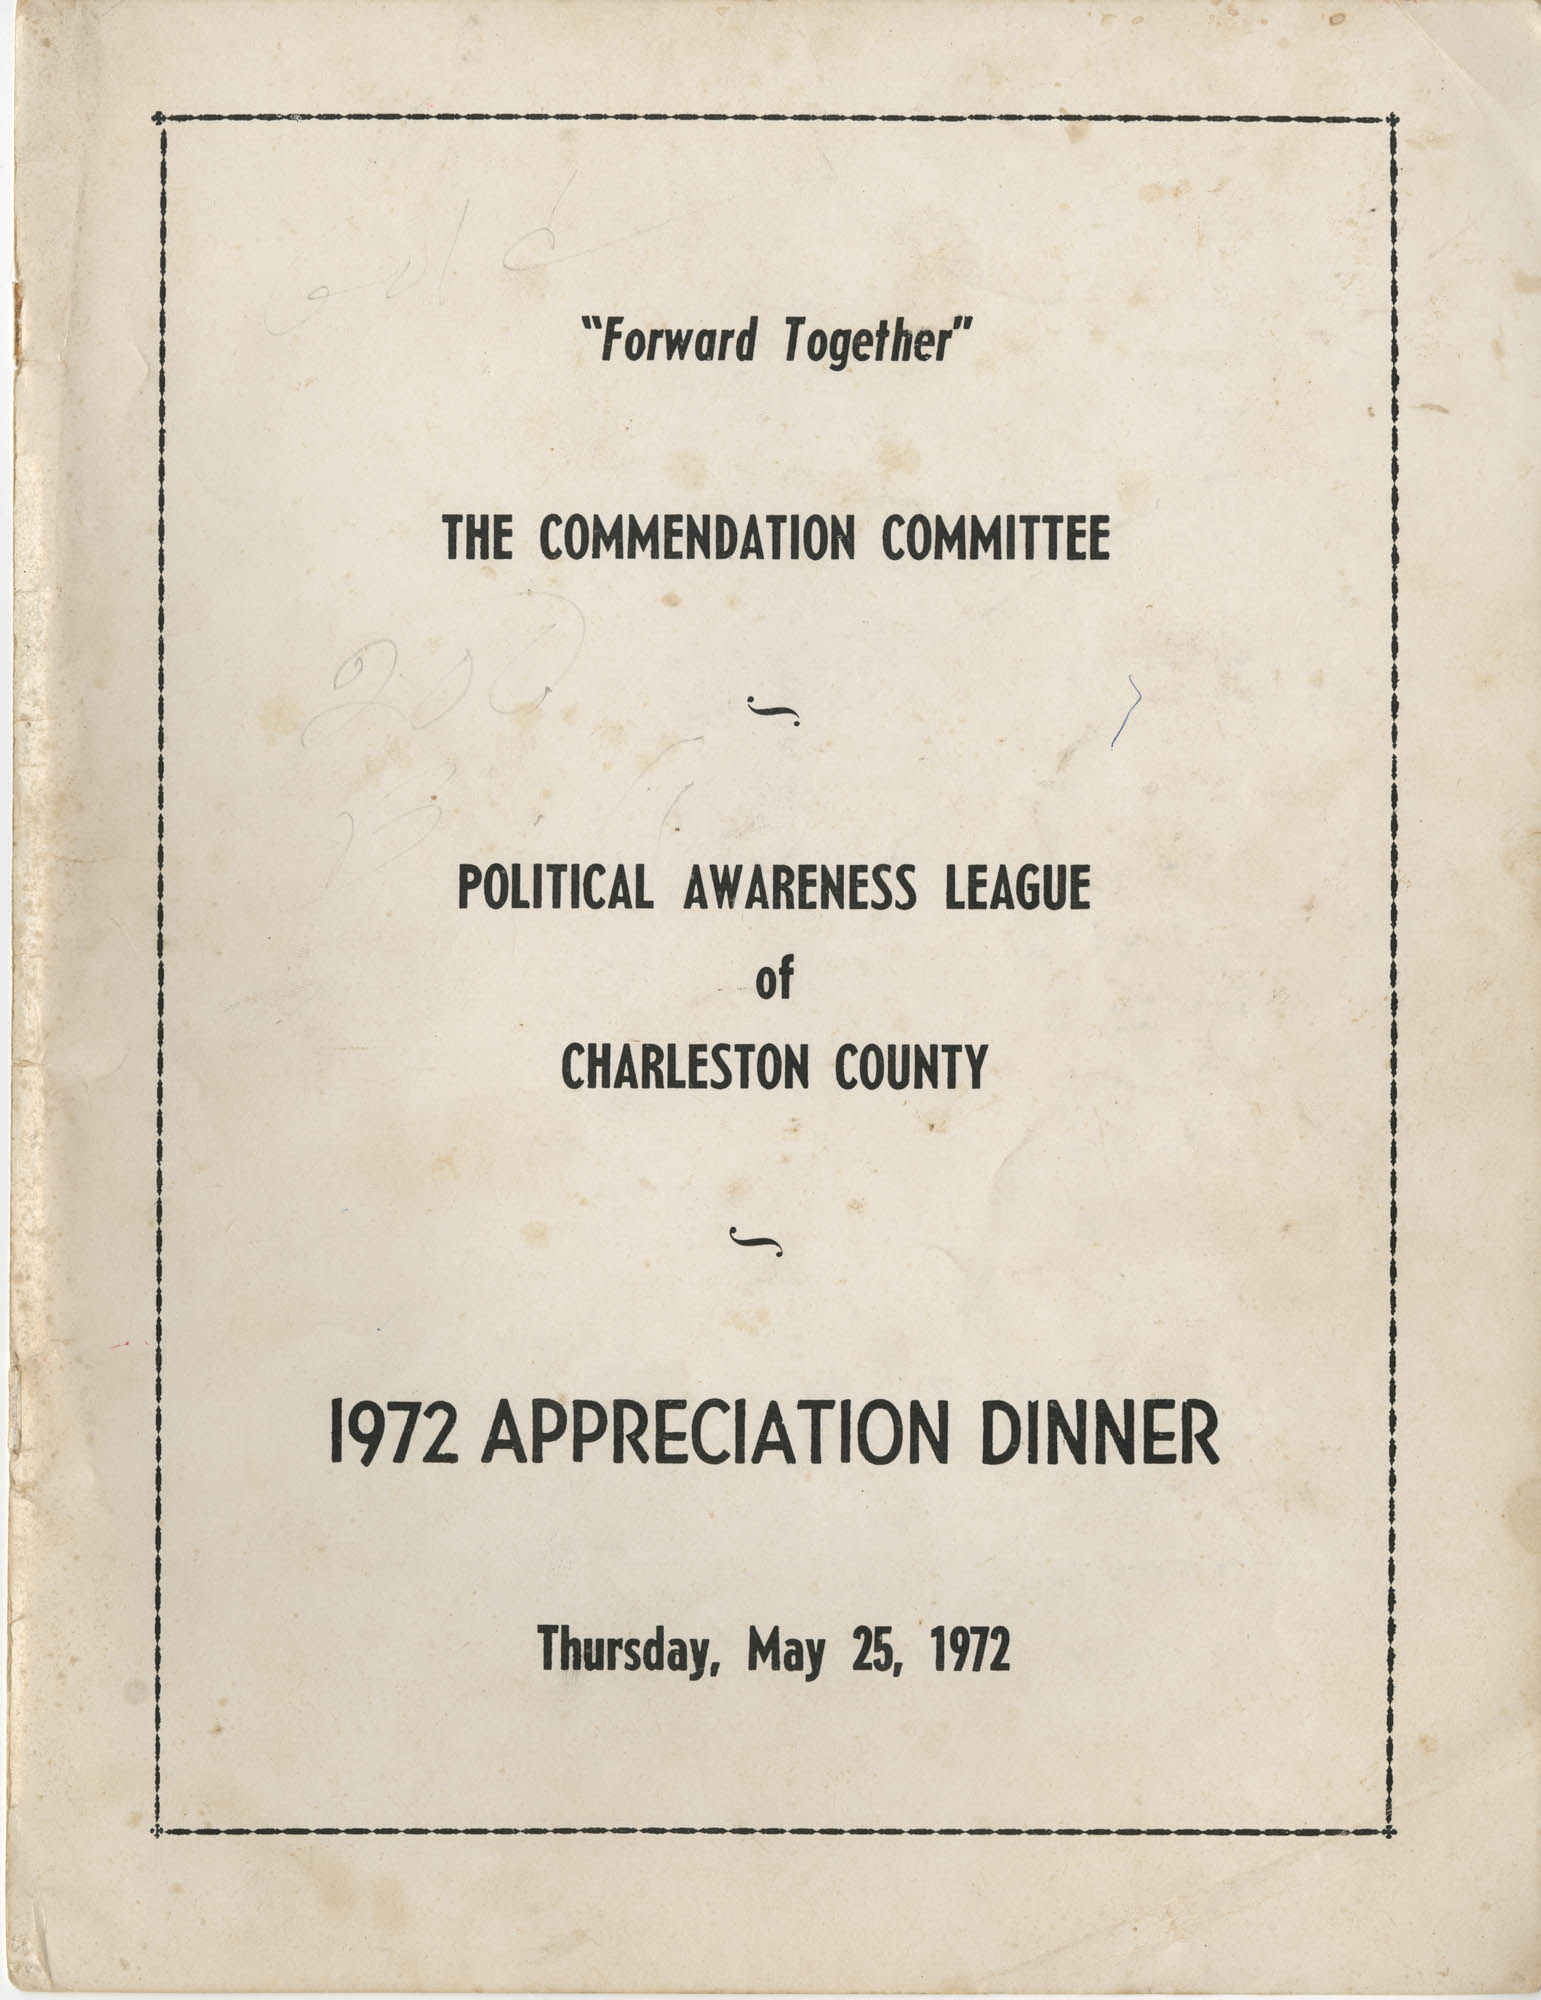 Political Awareness League of Charleston County, 1972 Appreciation Dinner, Front Cover